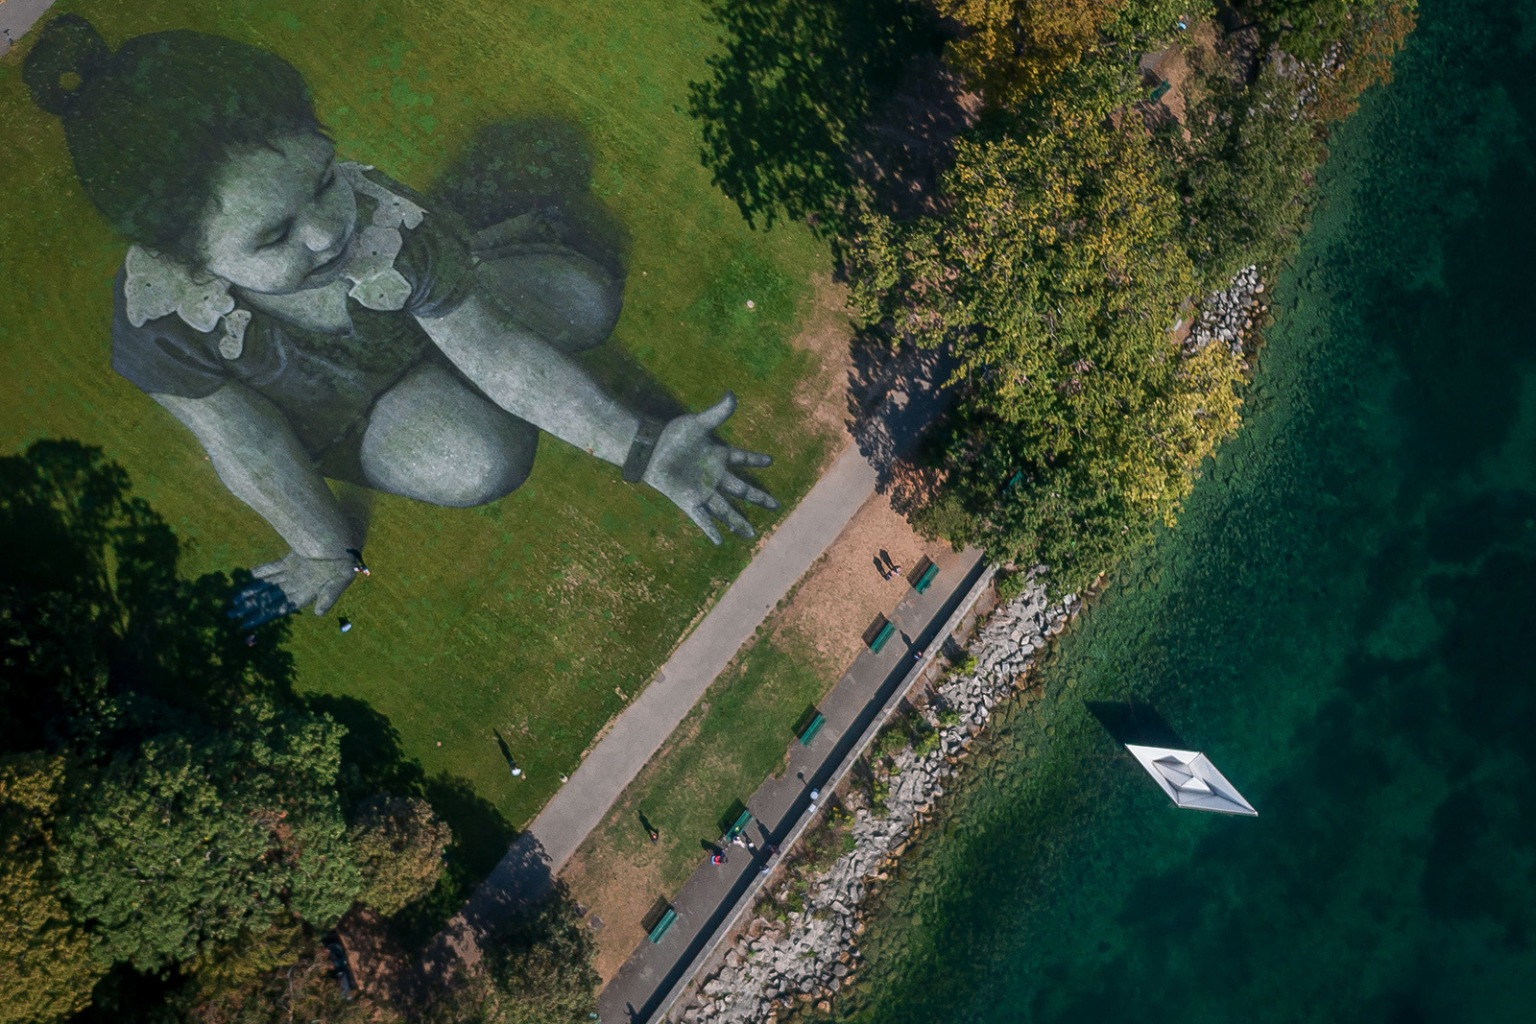 The giant land art fresco by French artist Saype in Geneva appears 3-dimensional from above on Sept. 17. The work shows a little girl dropping an origami boat into Lake Geneva and was painted to support the cause of the nongovernmental organization SOS Méditerranée, which specializes in the rescue of migrants at sea. FABRICE COFFRINI/AFP/GETTY IMAGES